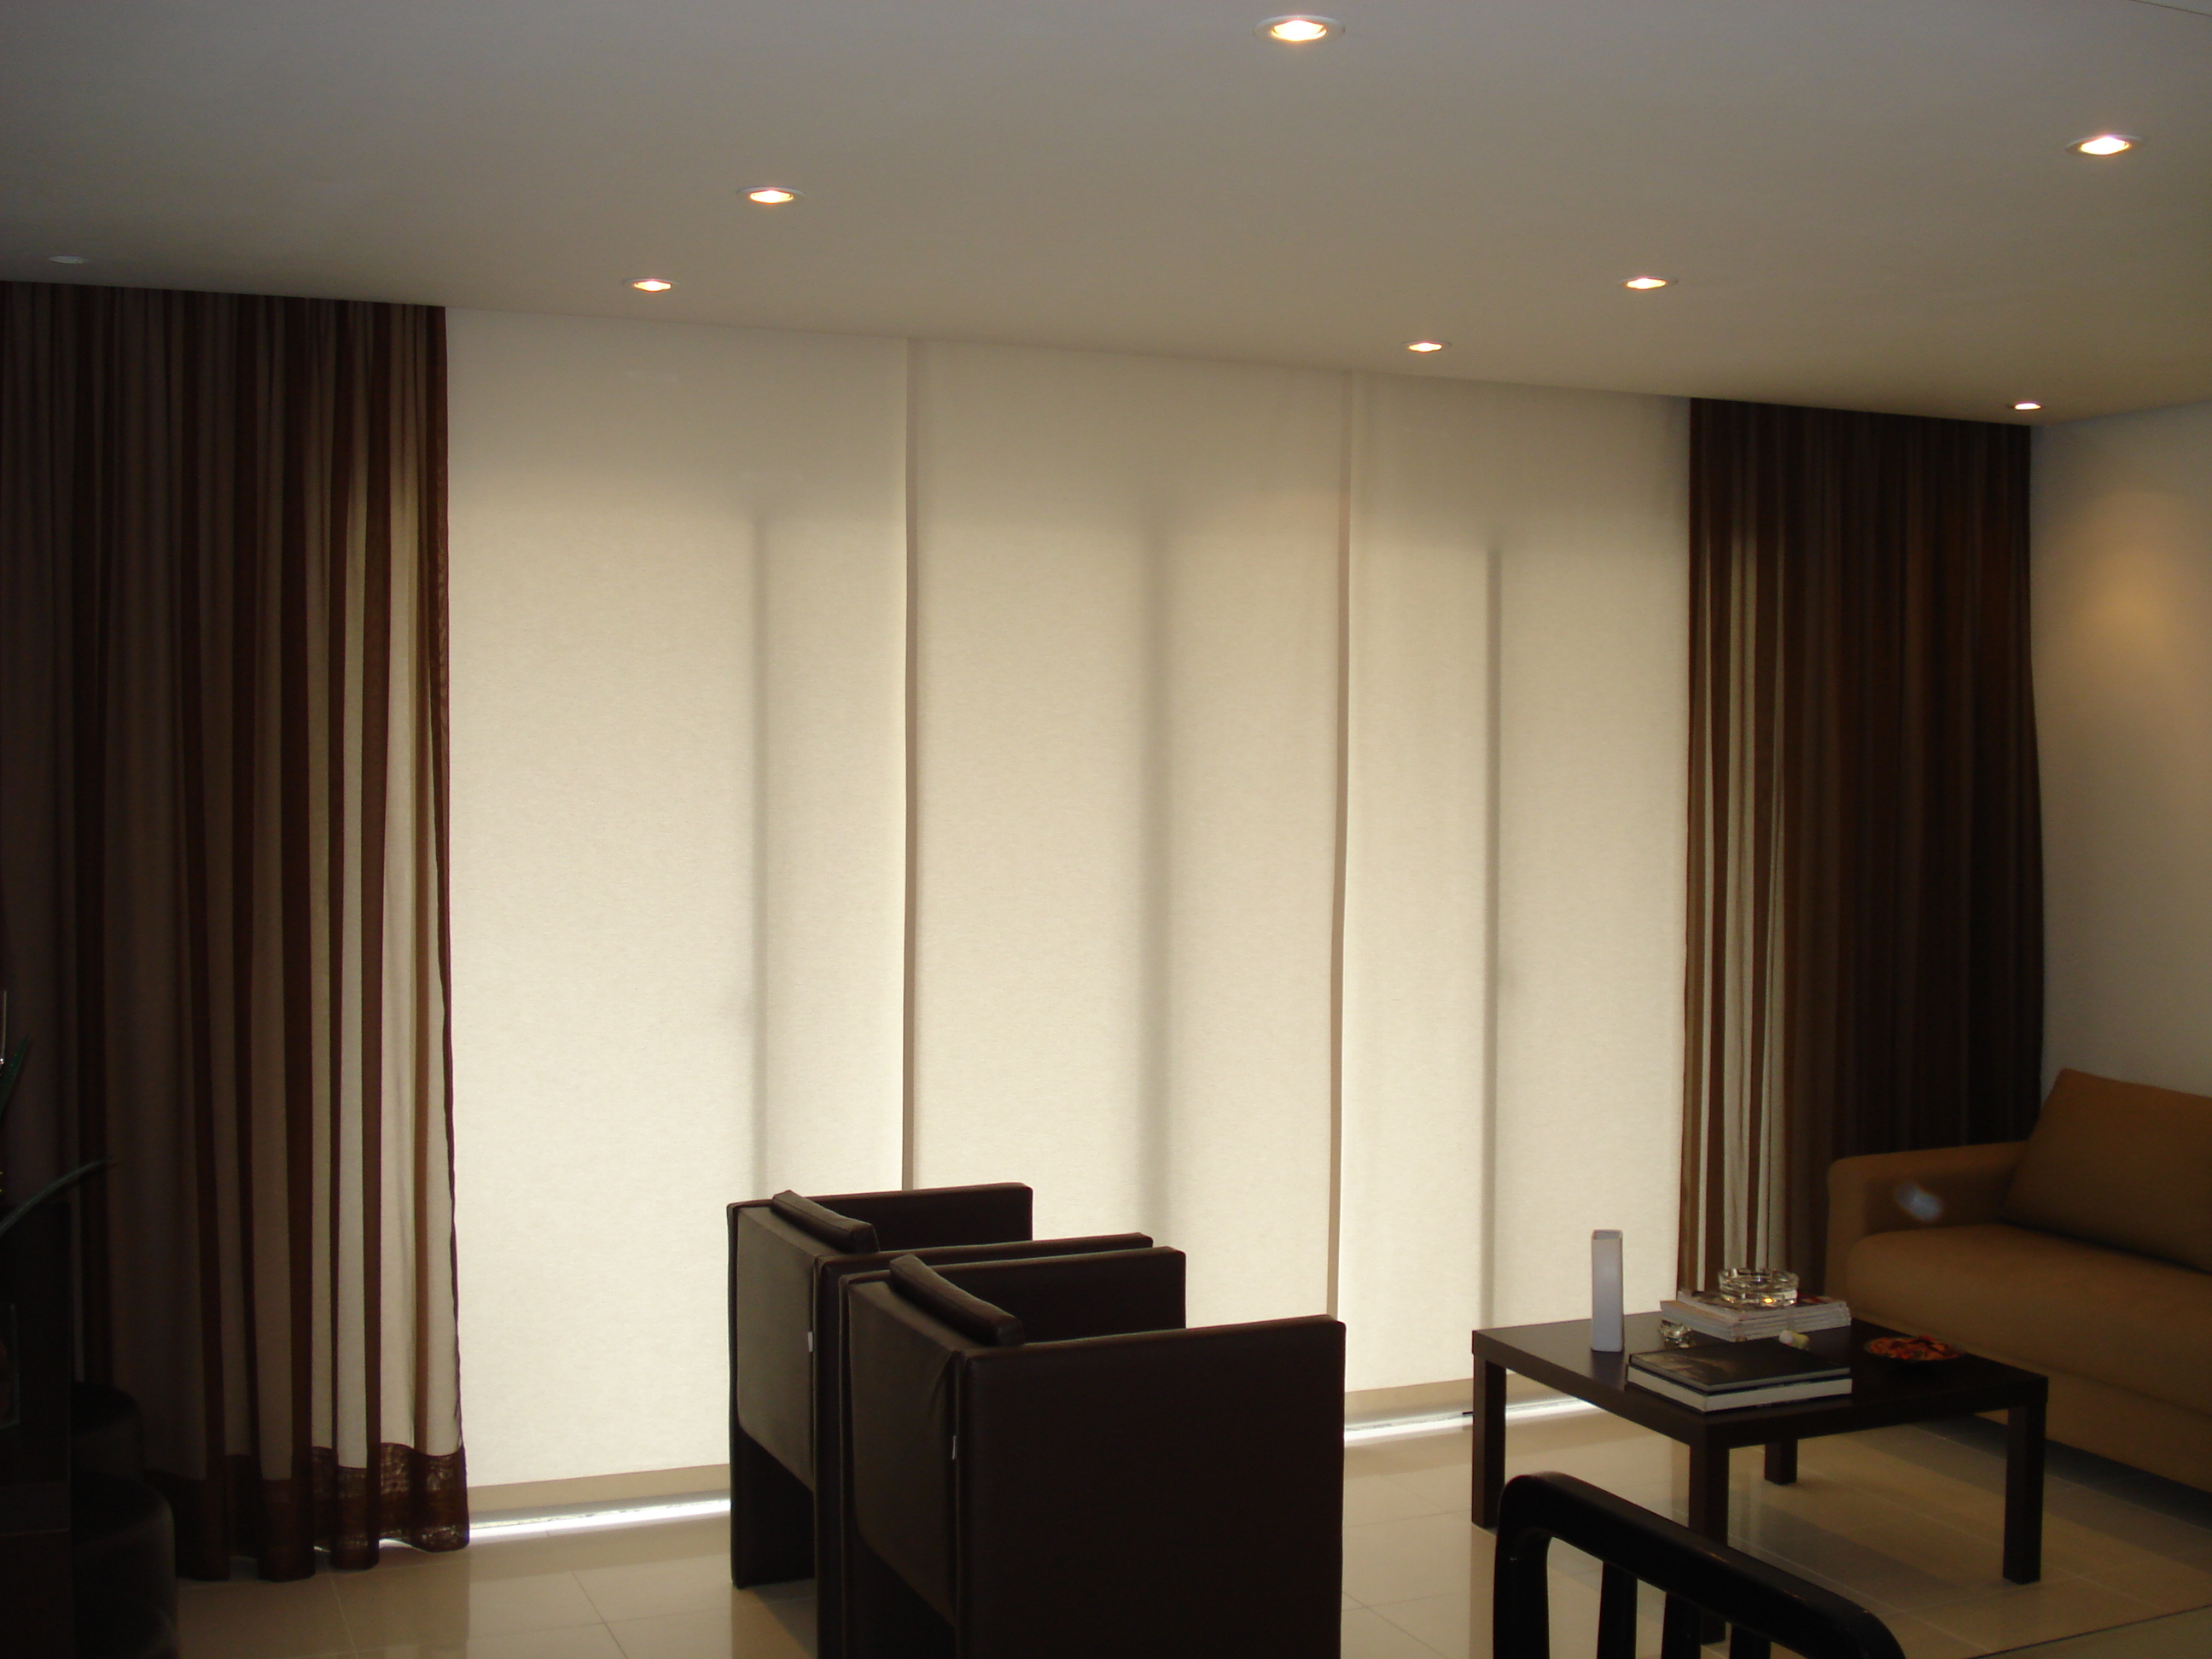 Vittoria decor painel - Cortinas tipo persiana ...